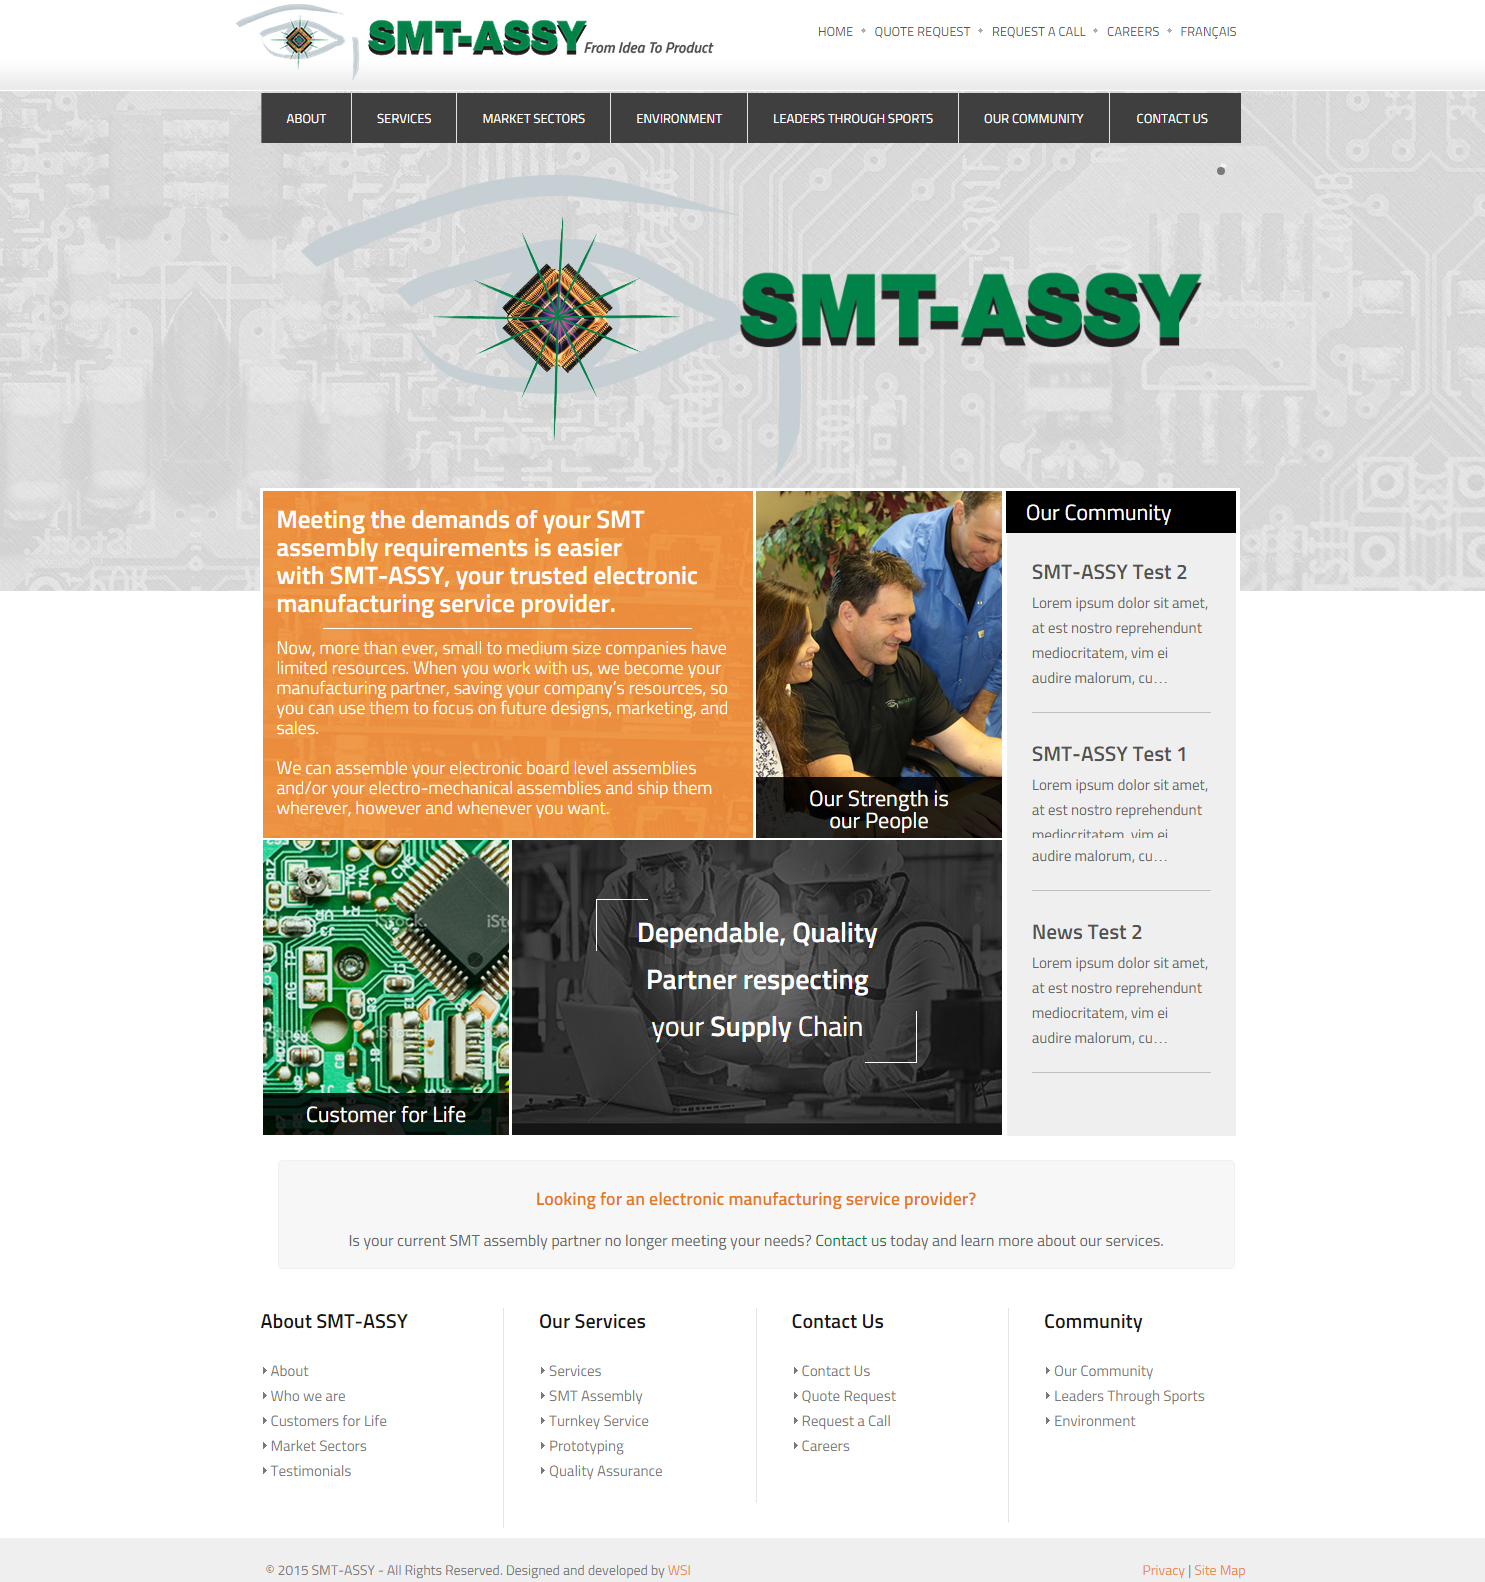 SMT-ASSY's Redesigned Website